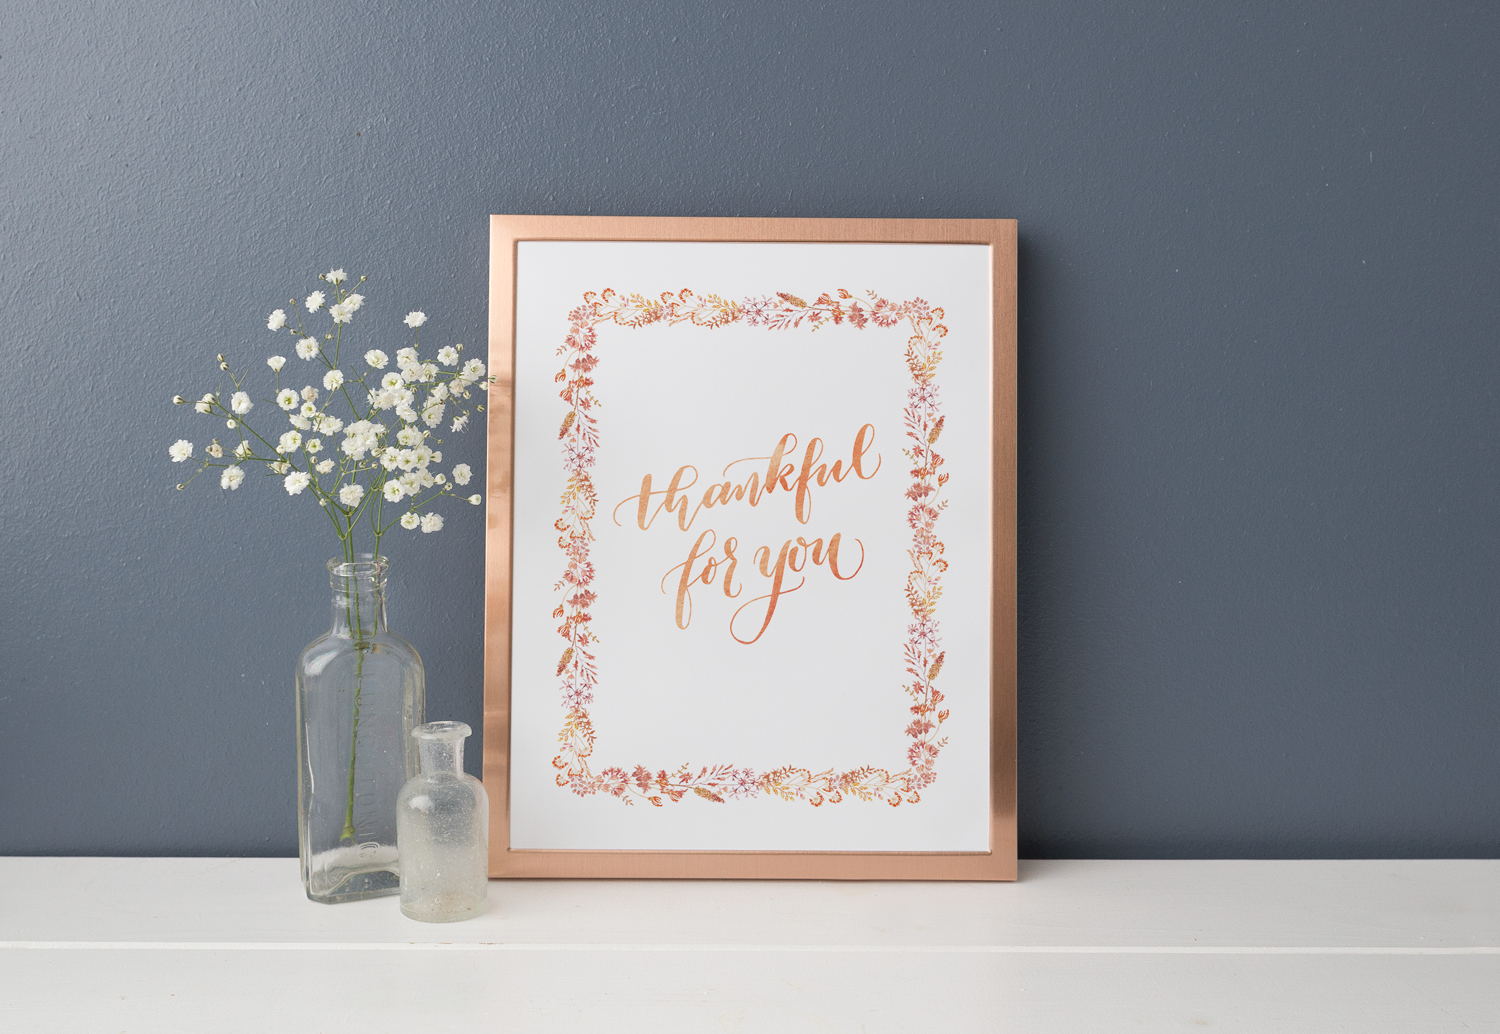 Thankful for you - Thanksgiving Free Printable. Print on a 8x10 cardstock.